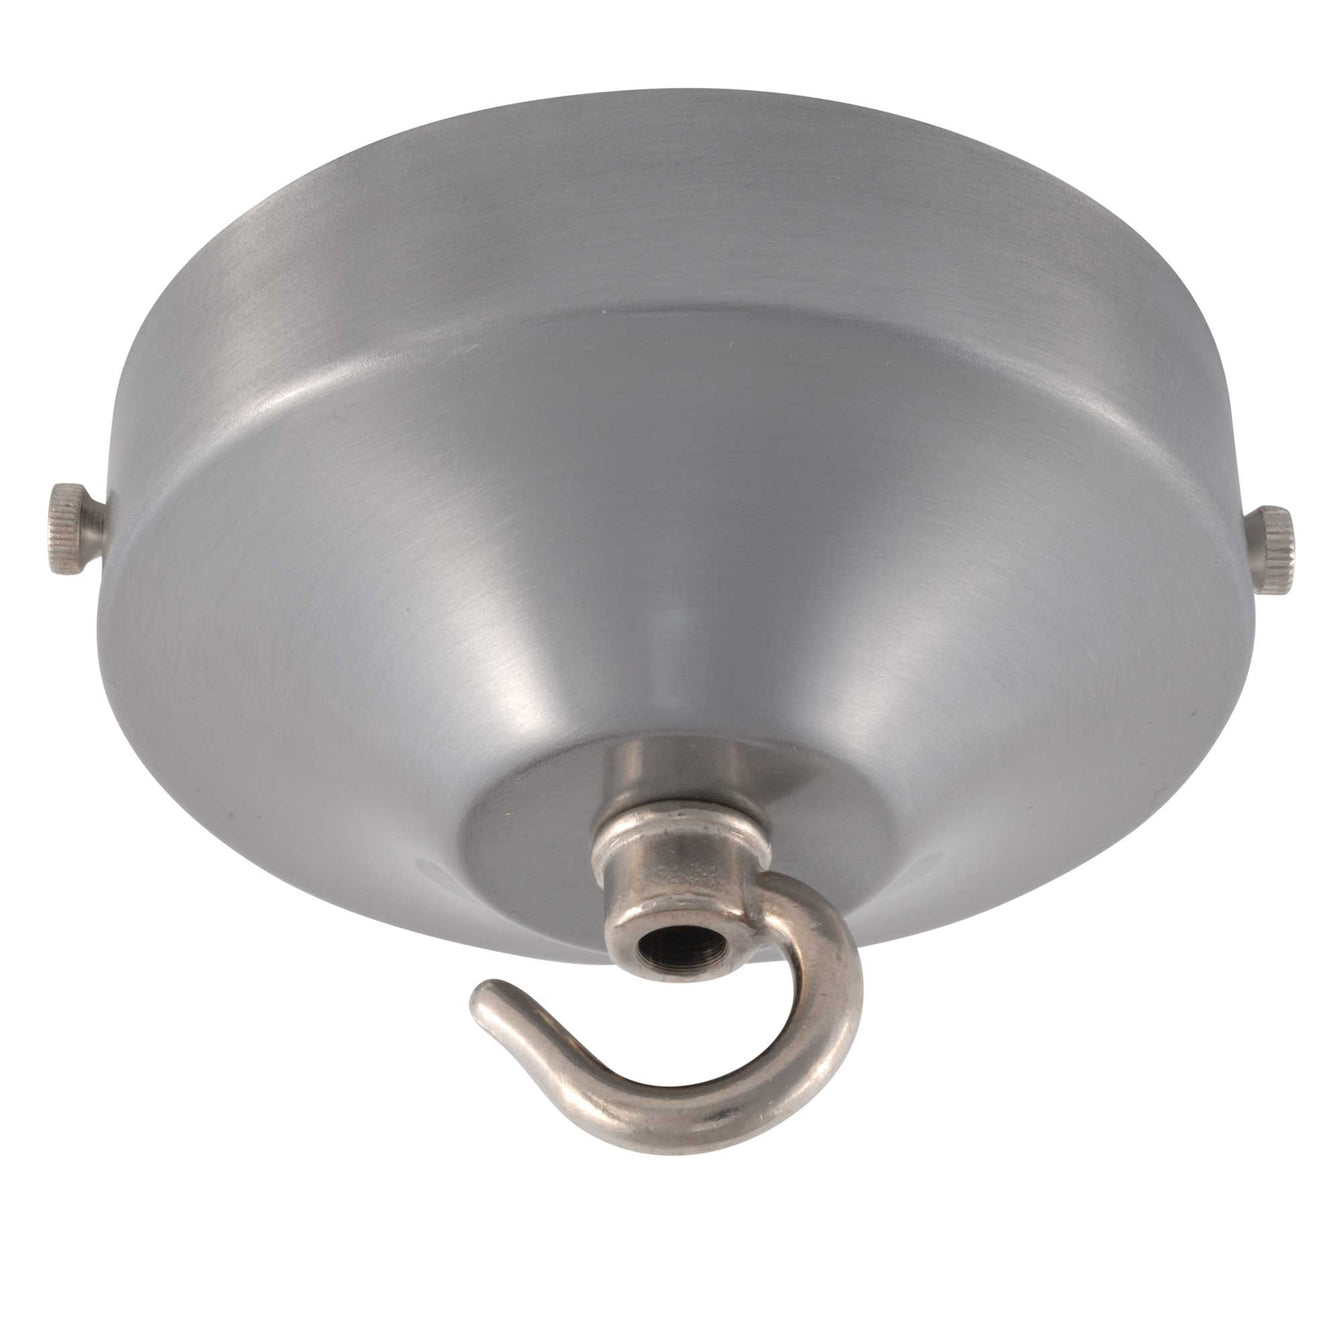 ElekTek 100mm Diameter Convex Ceiling Rose with Strap Bracket and Hook Metallic and Powder Coated Finishes Pink